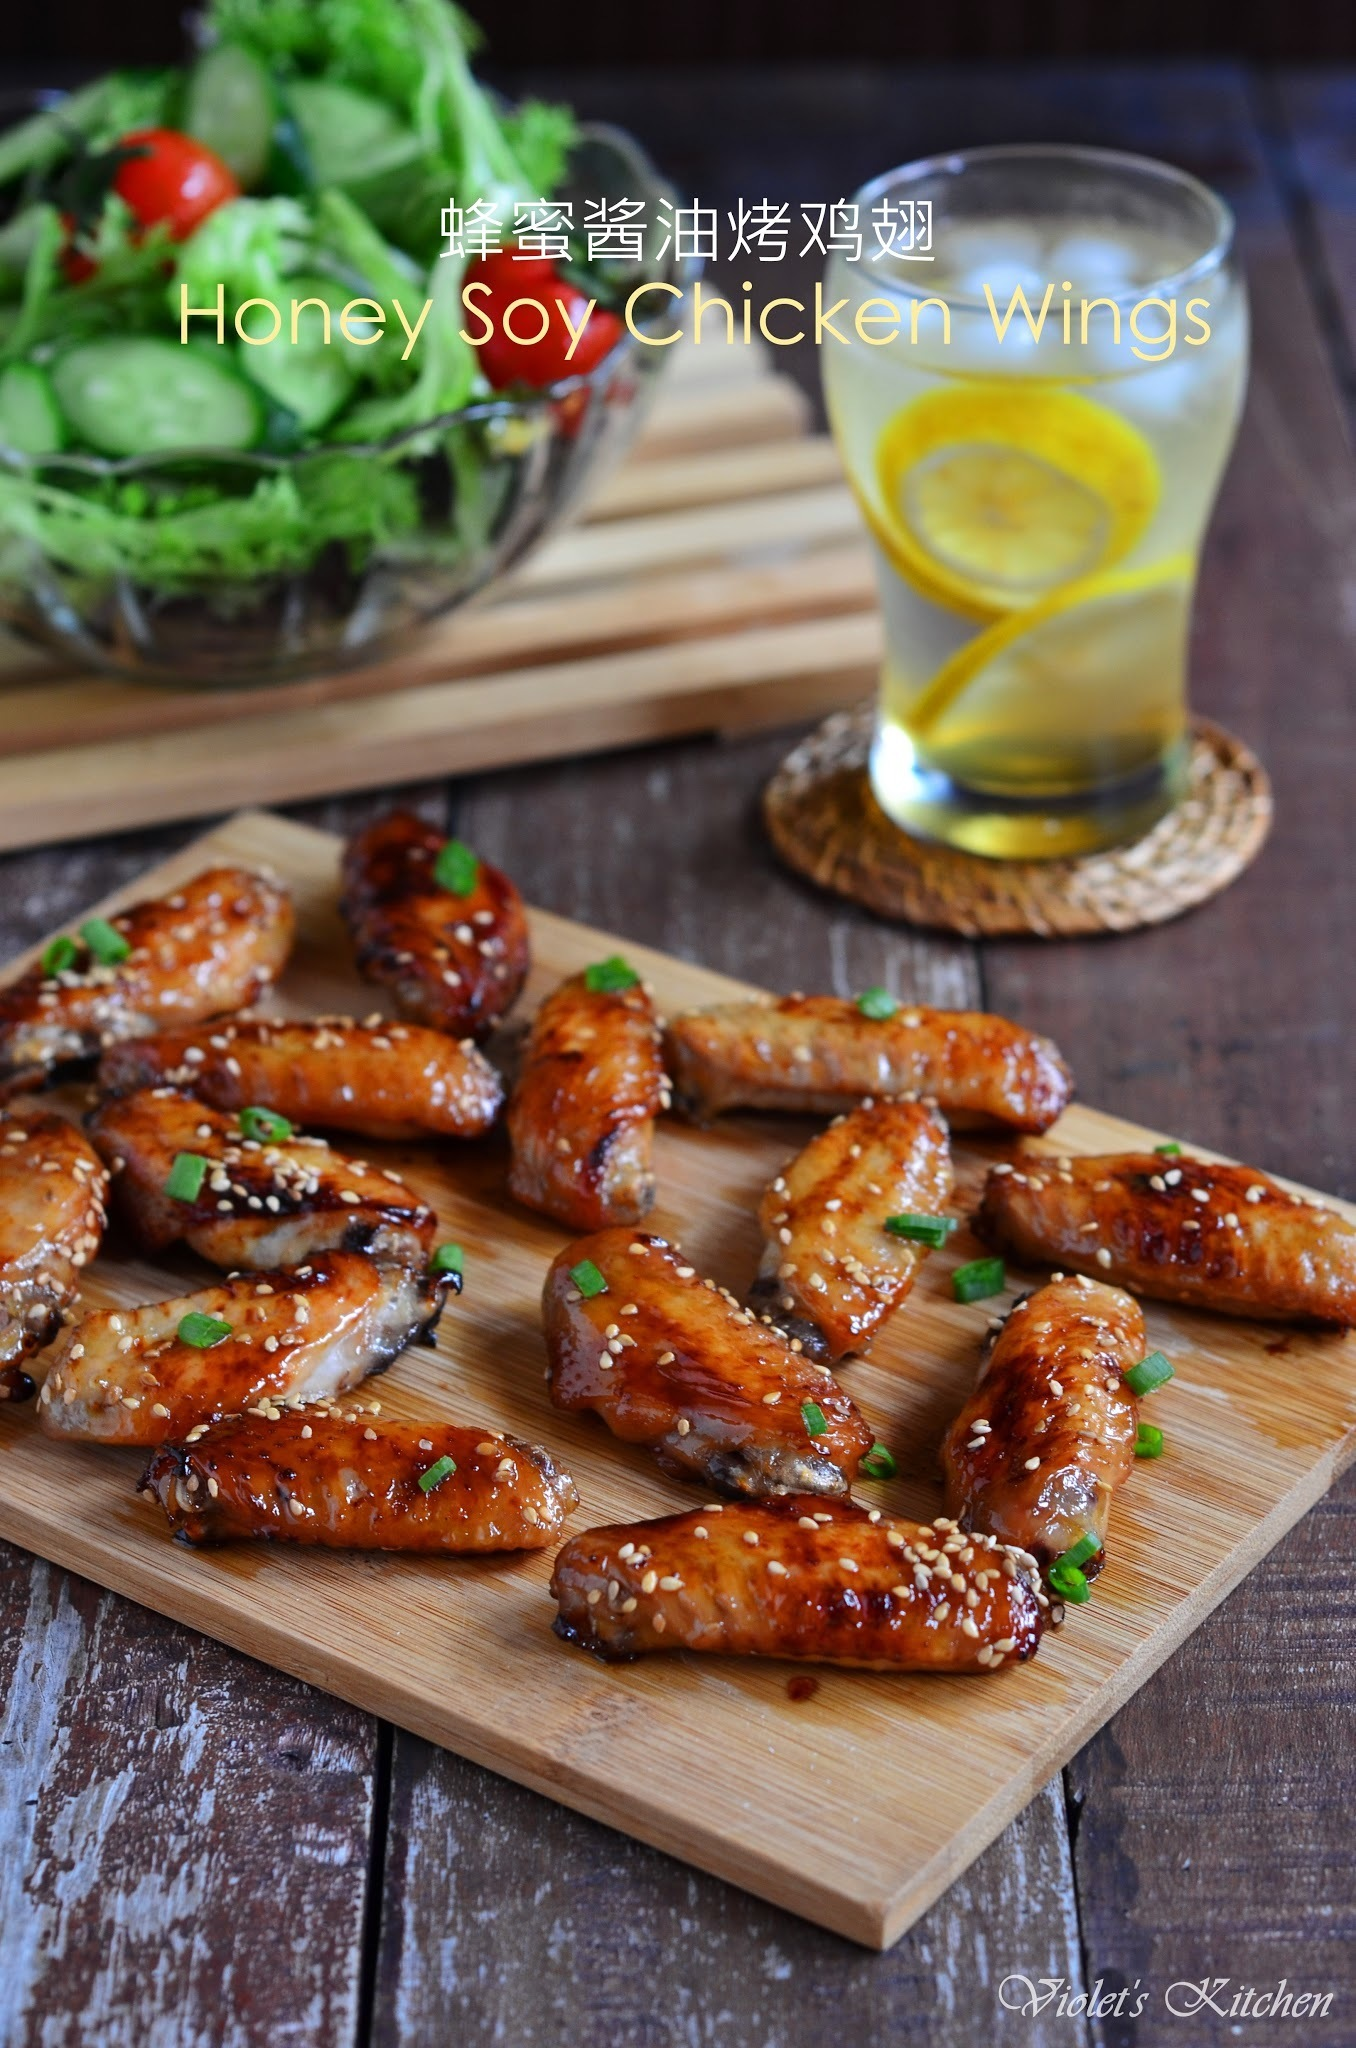 蜂蜜酱油烤鸡翅 Honey Soy Chicken Wings (空气炸锅版 / Air Fryer Version)